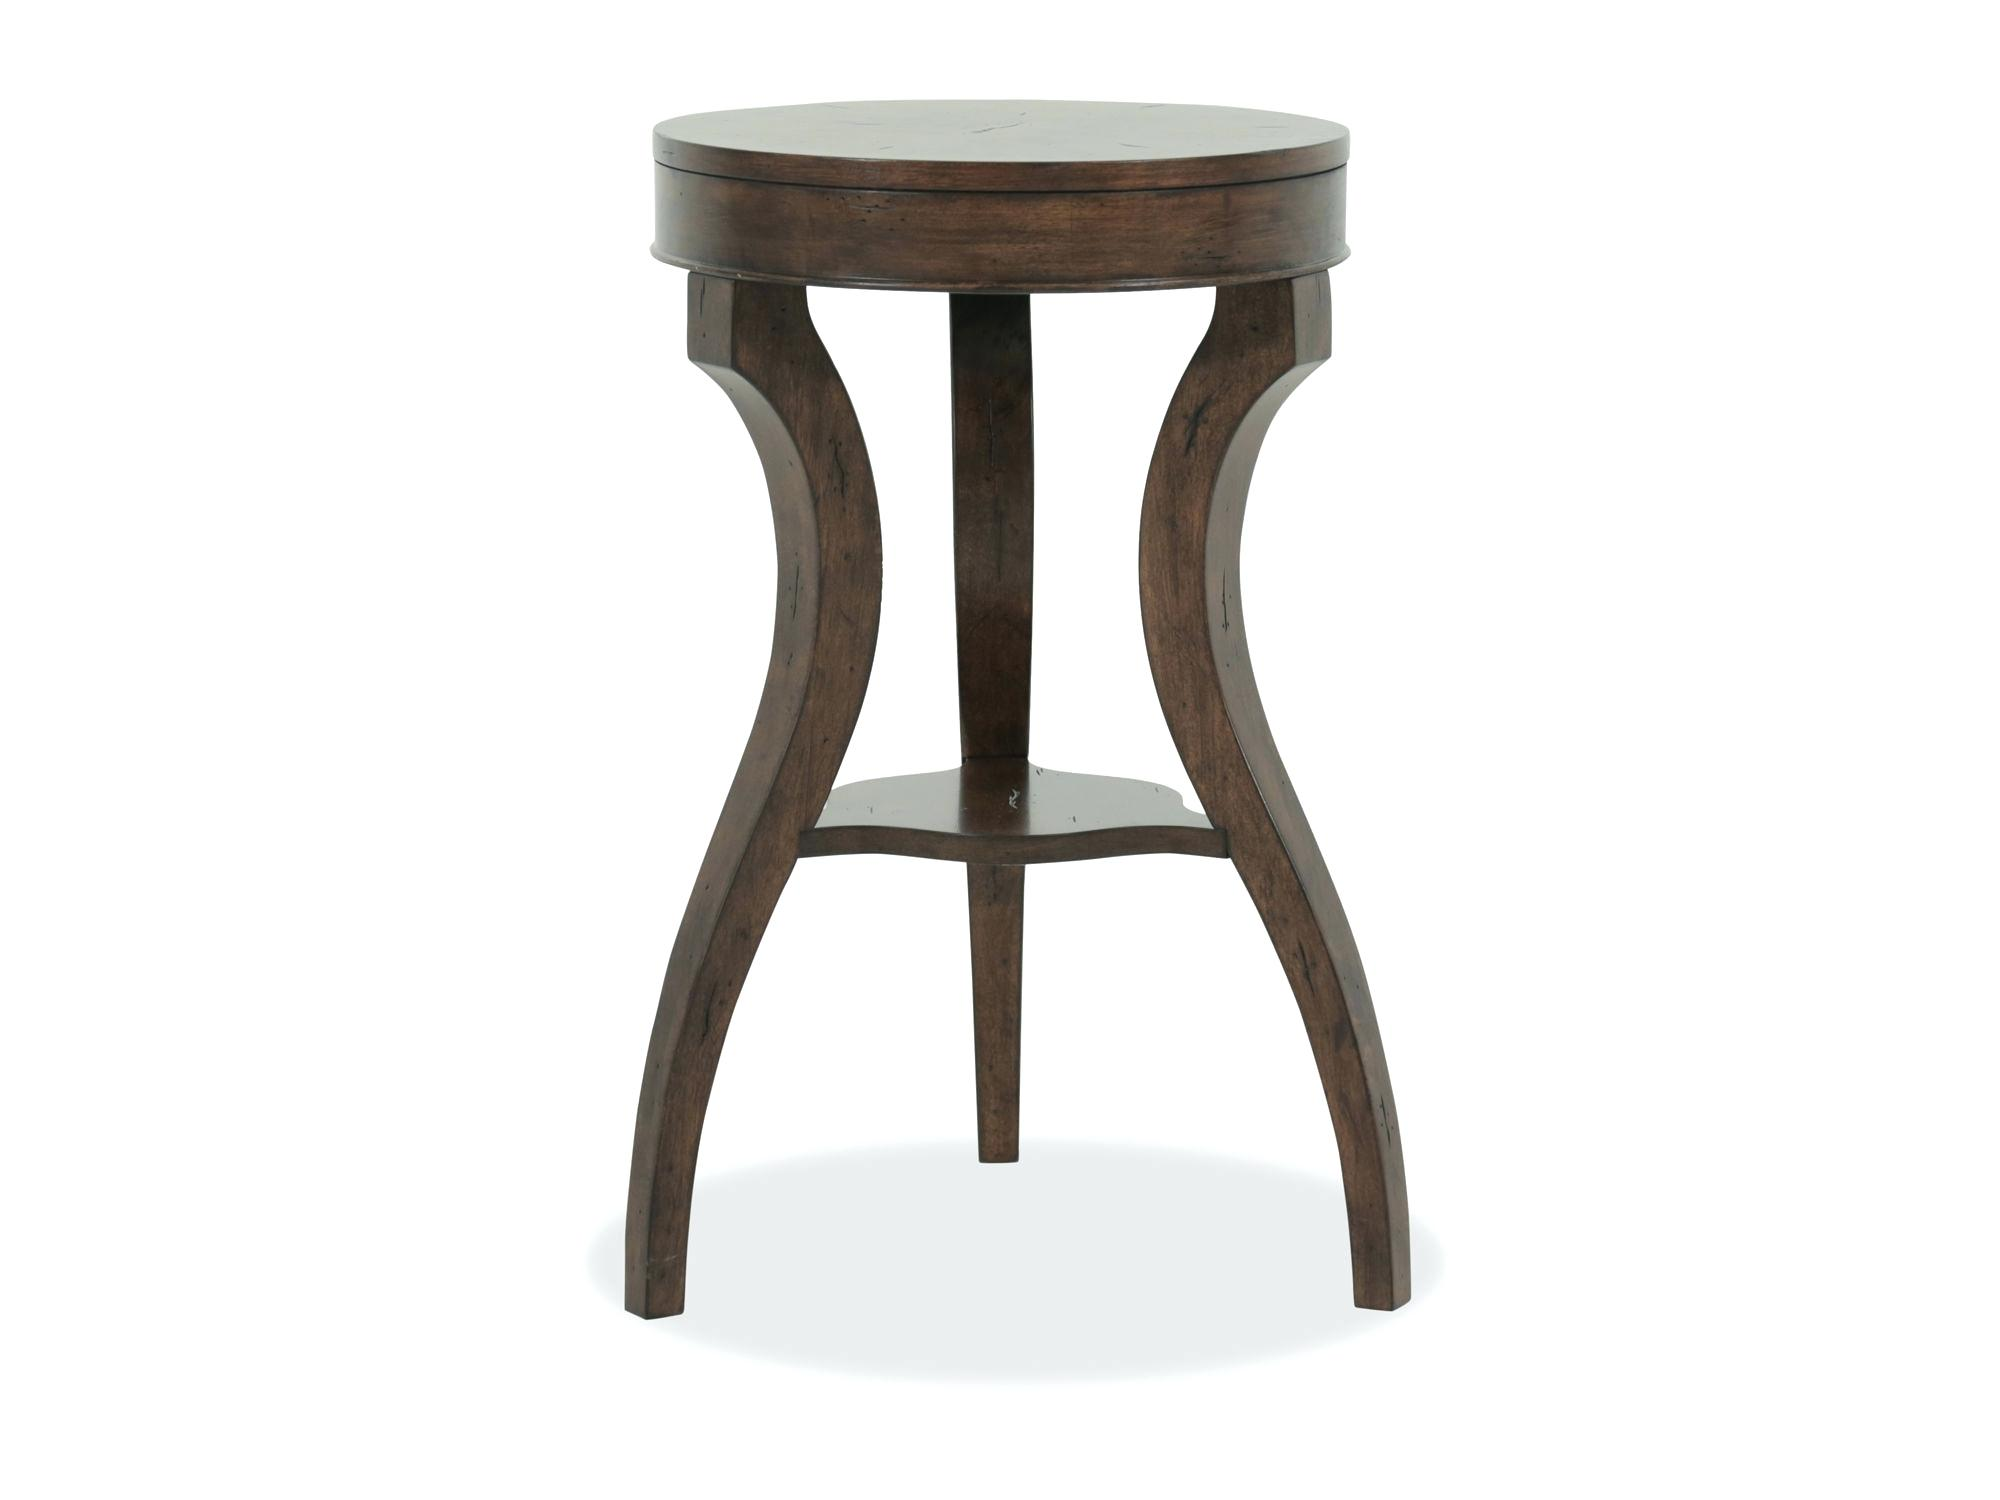 accent table metal and wood round faux target small kitchen unfinished avani mango drum top contemporary earthy brown scenic hook full size white wicker furniture pier one